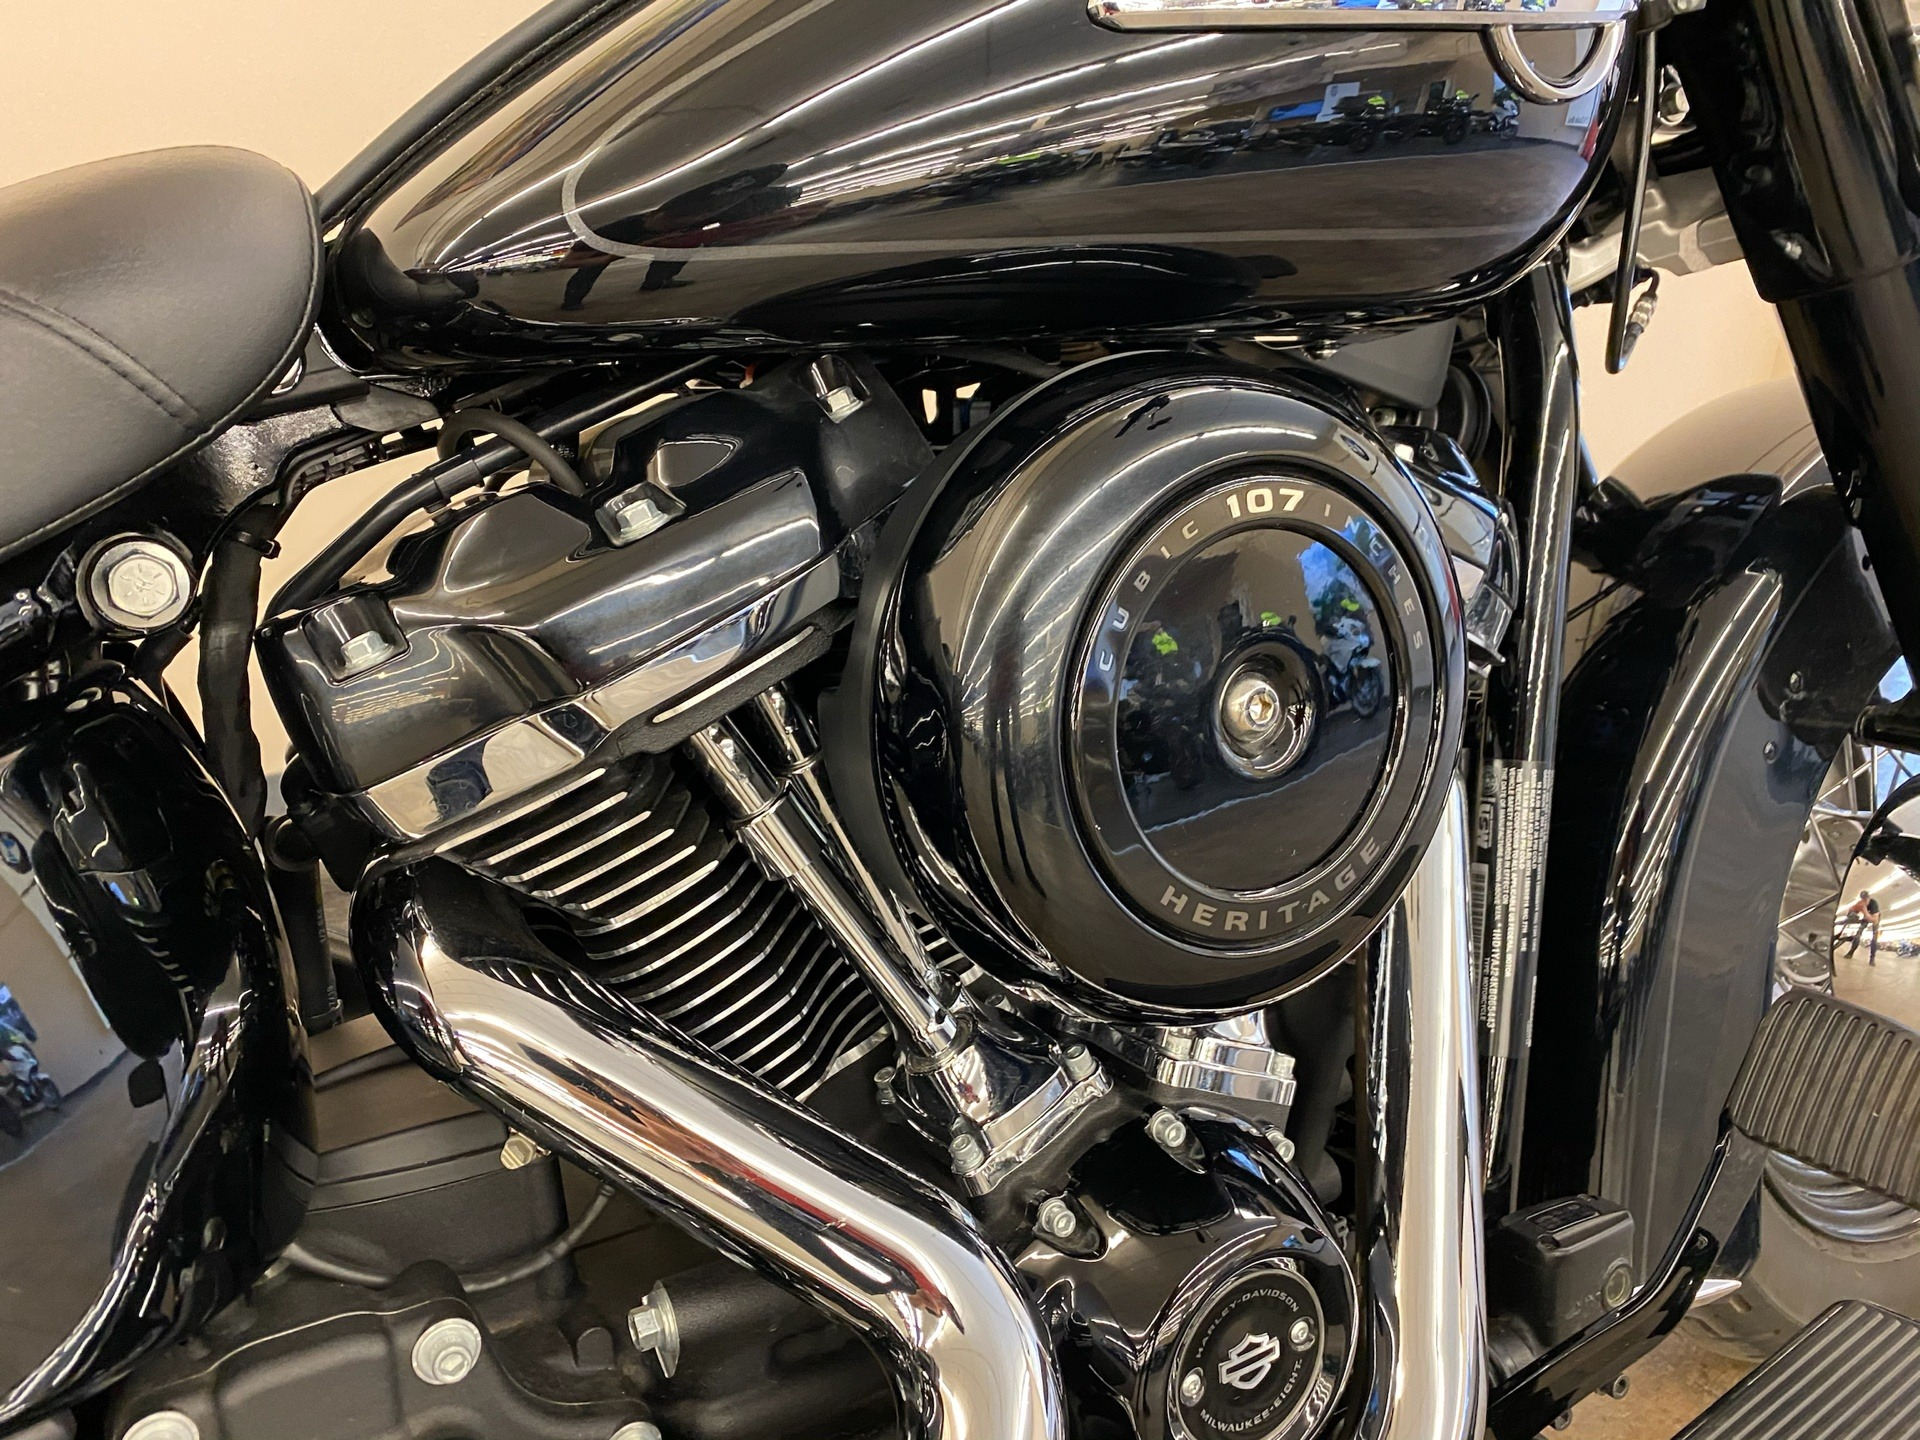 2019 Harley-Davidson Heritage Classic 107 in Colorado Springs, Colorado - Photo 2